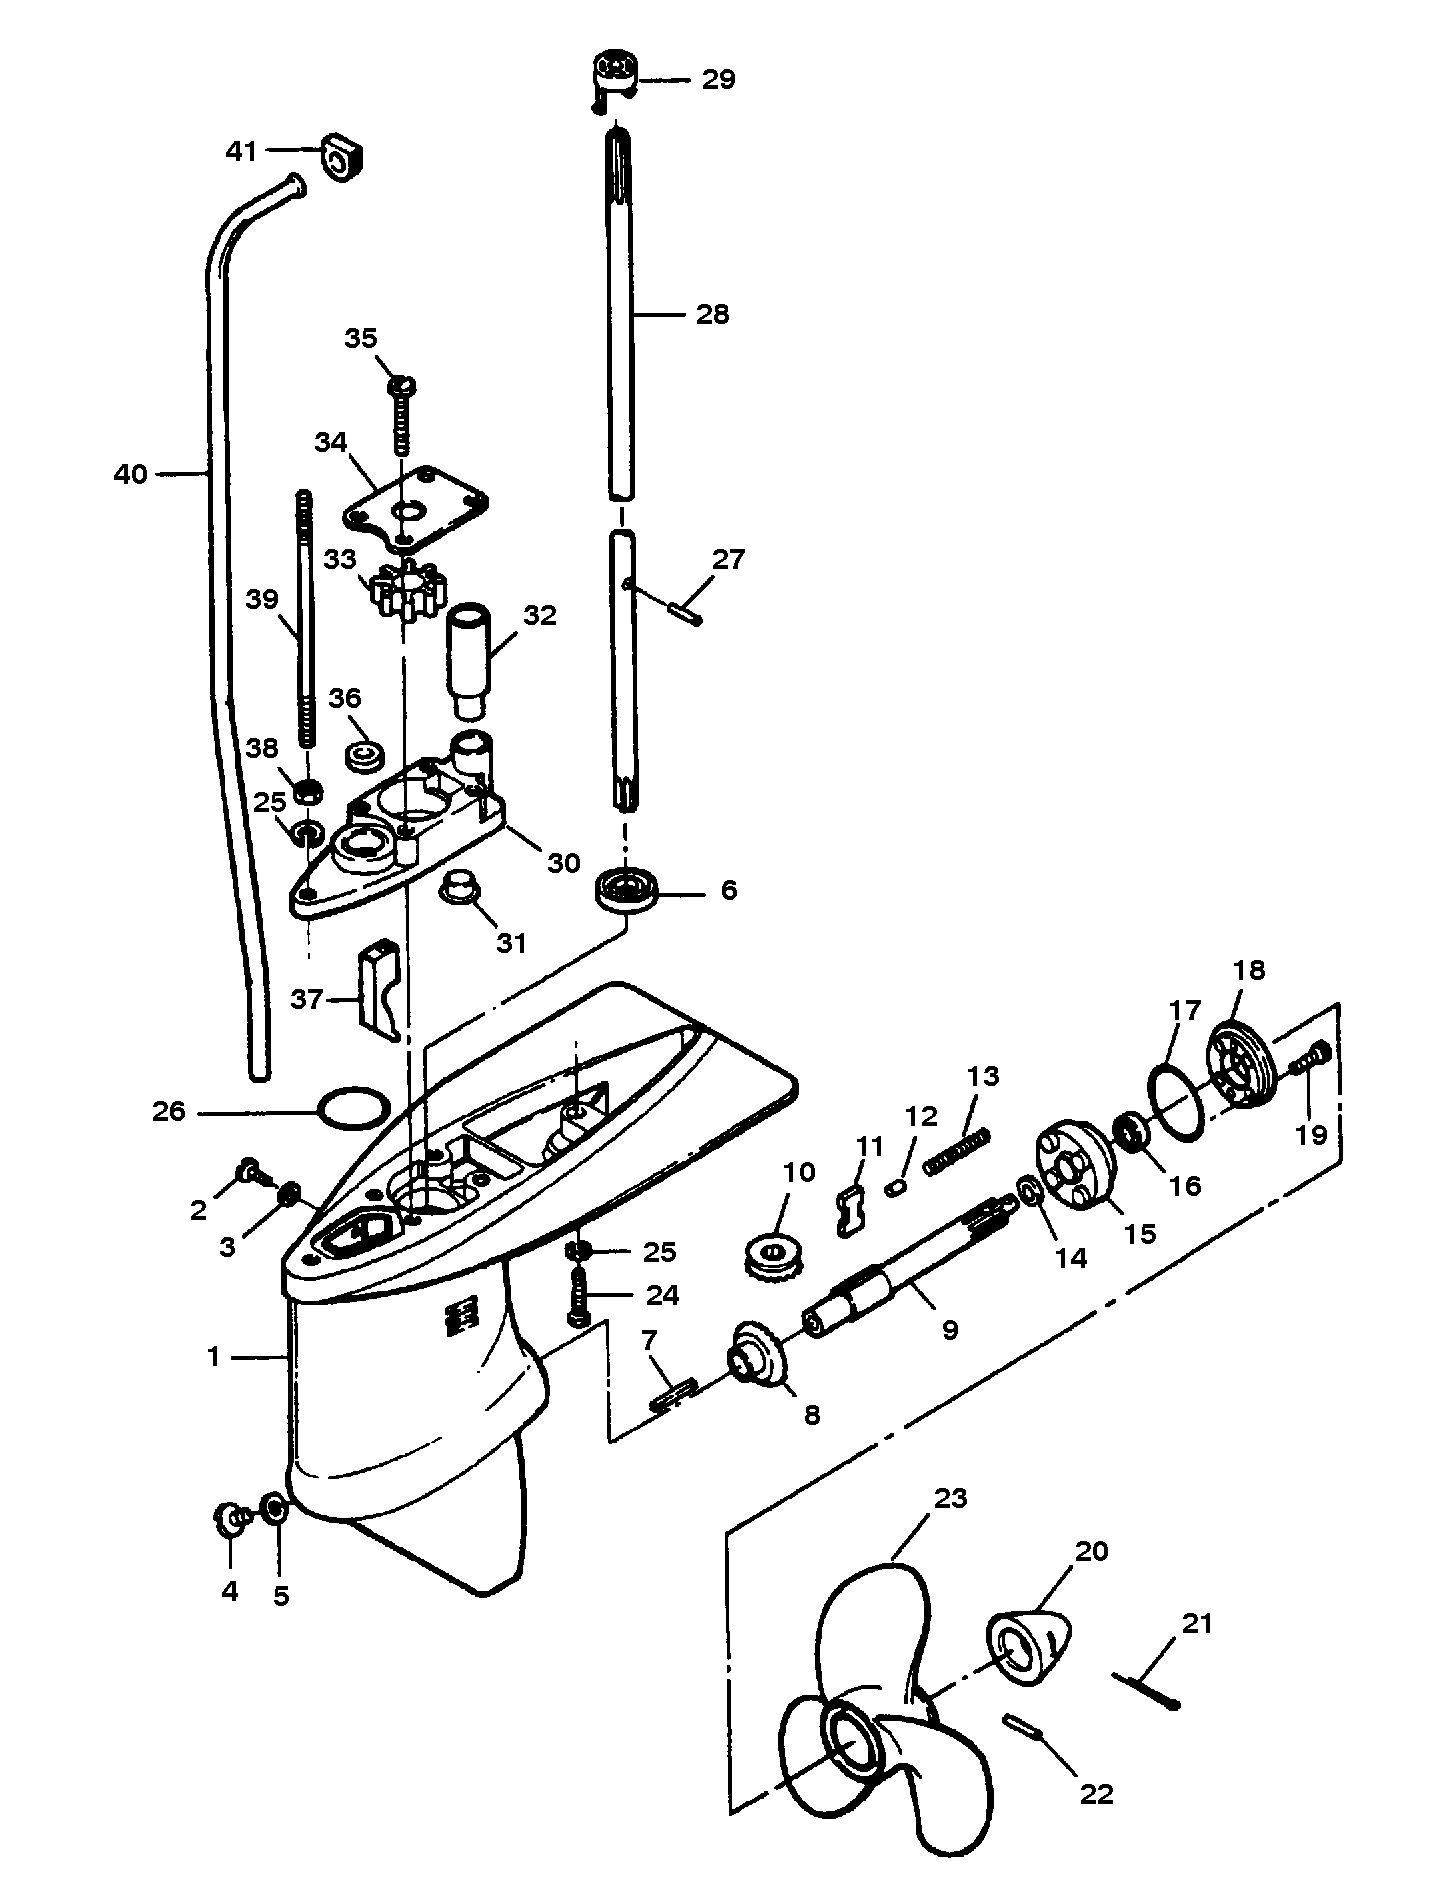 Gear Housing Assembly For Gamefisher 5 H P